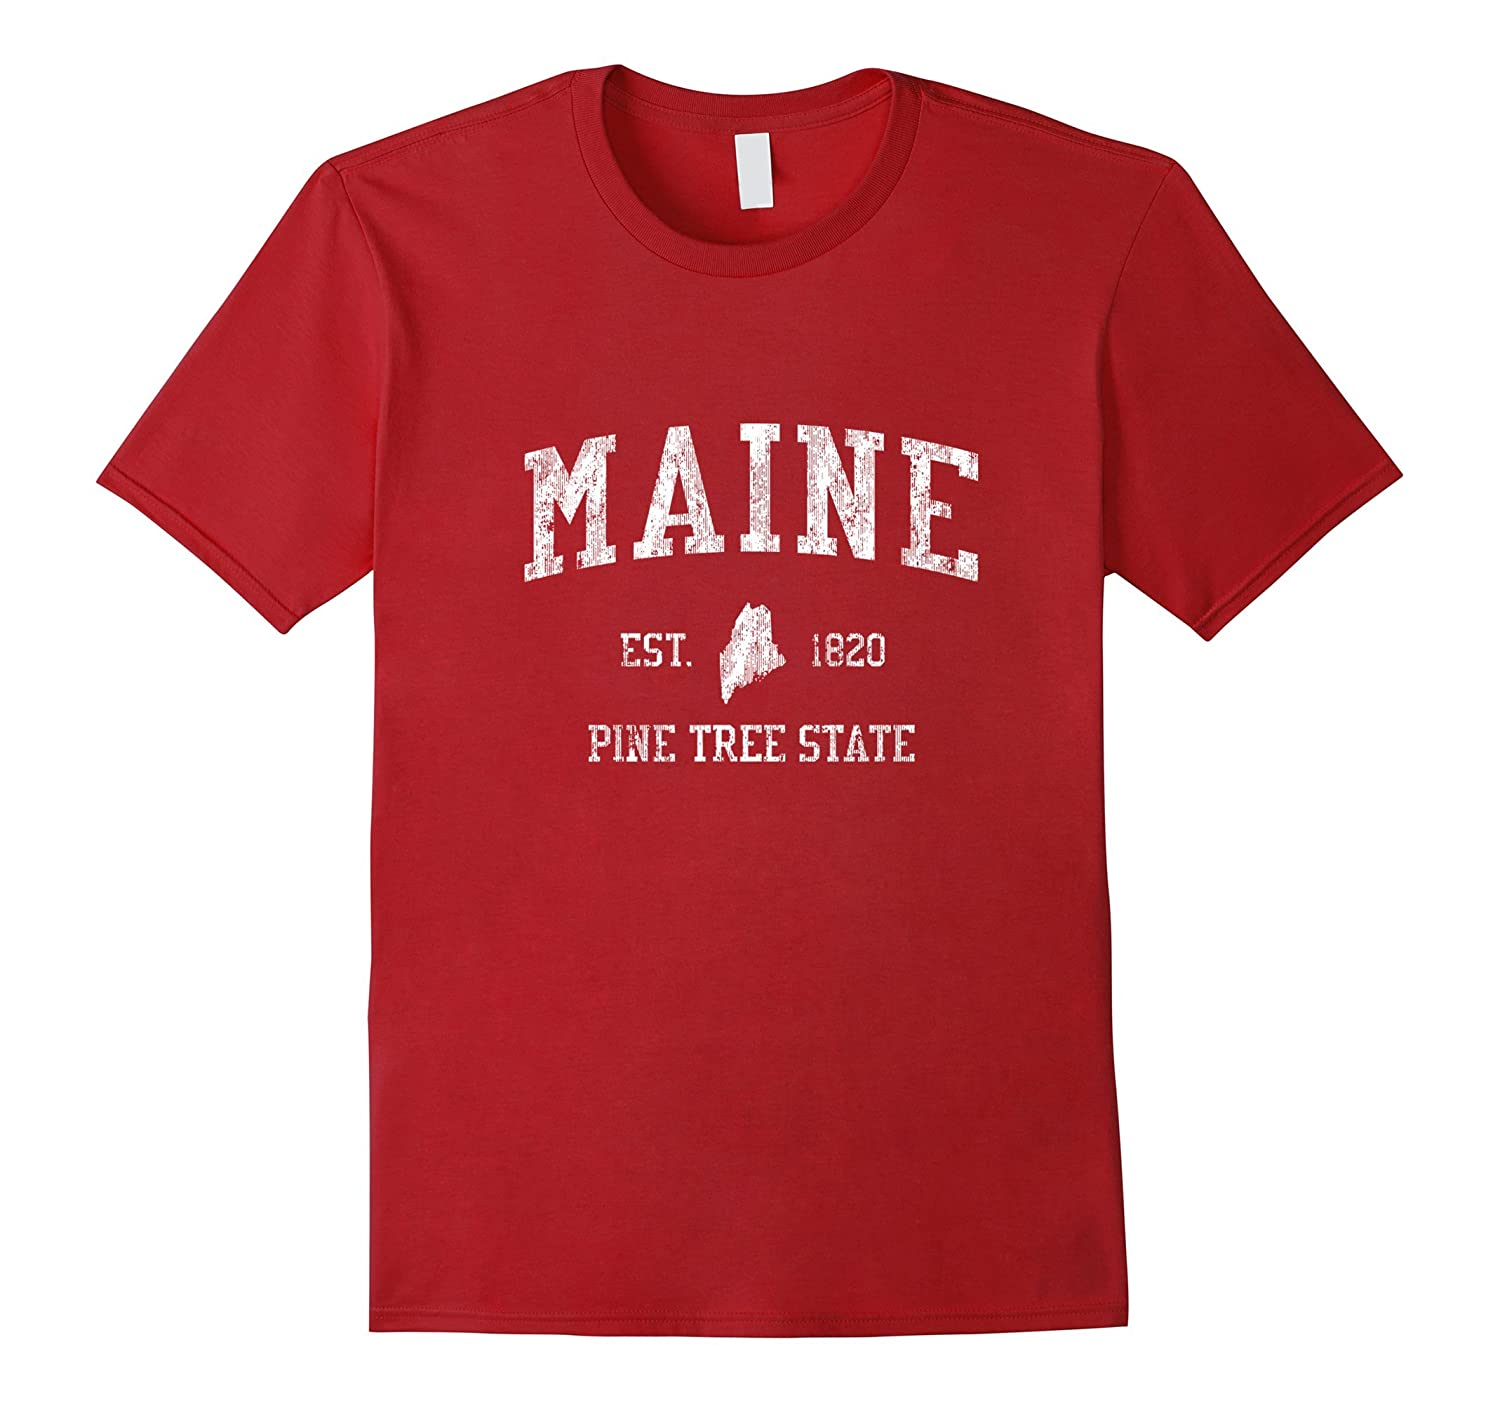 Retro Maine T Shirt Vintage Sports Tee Design-BN